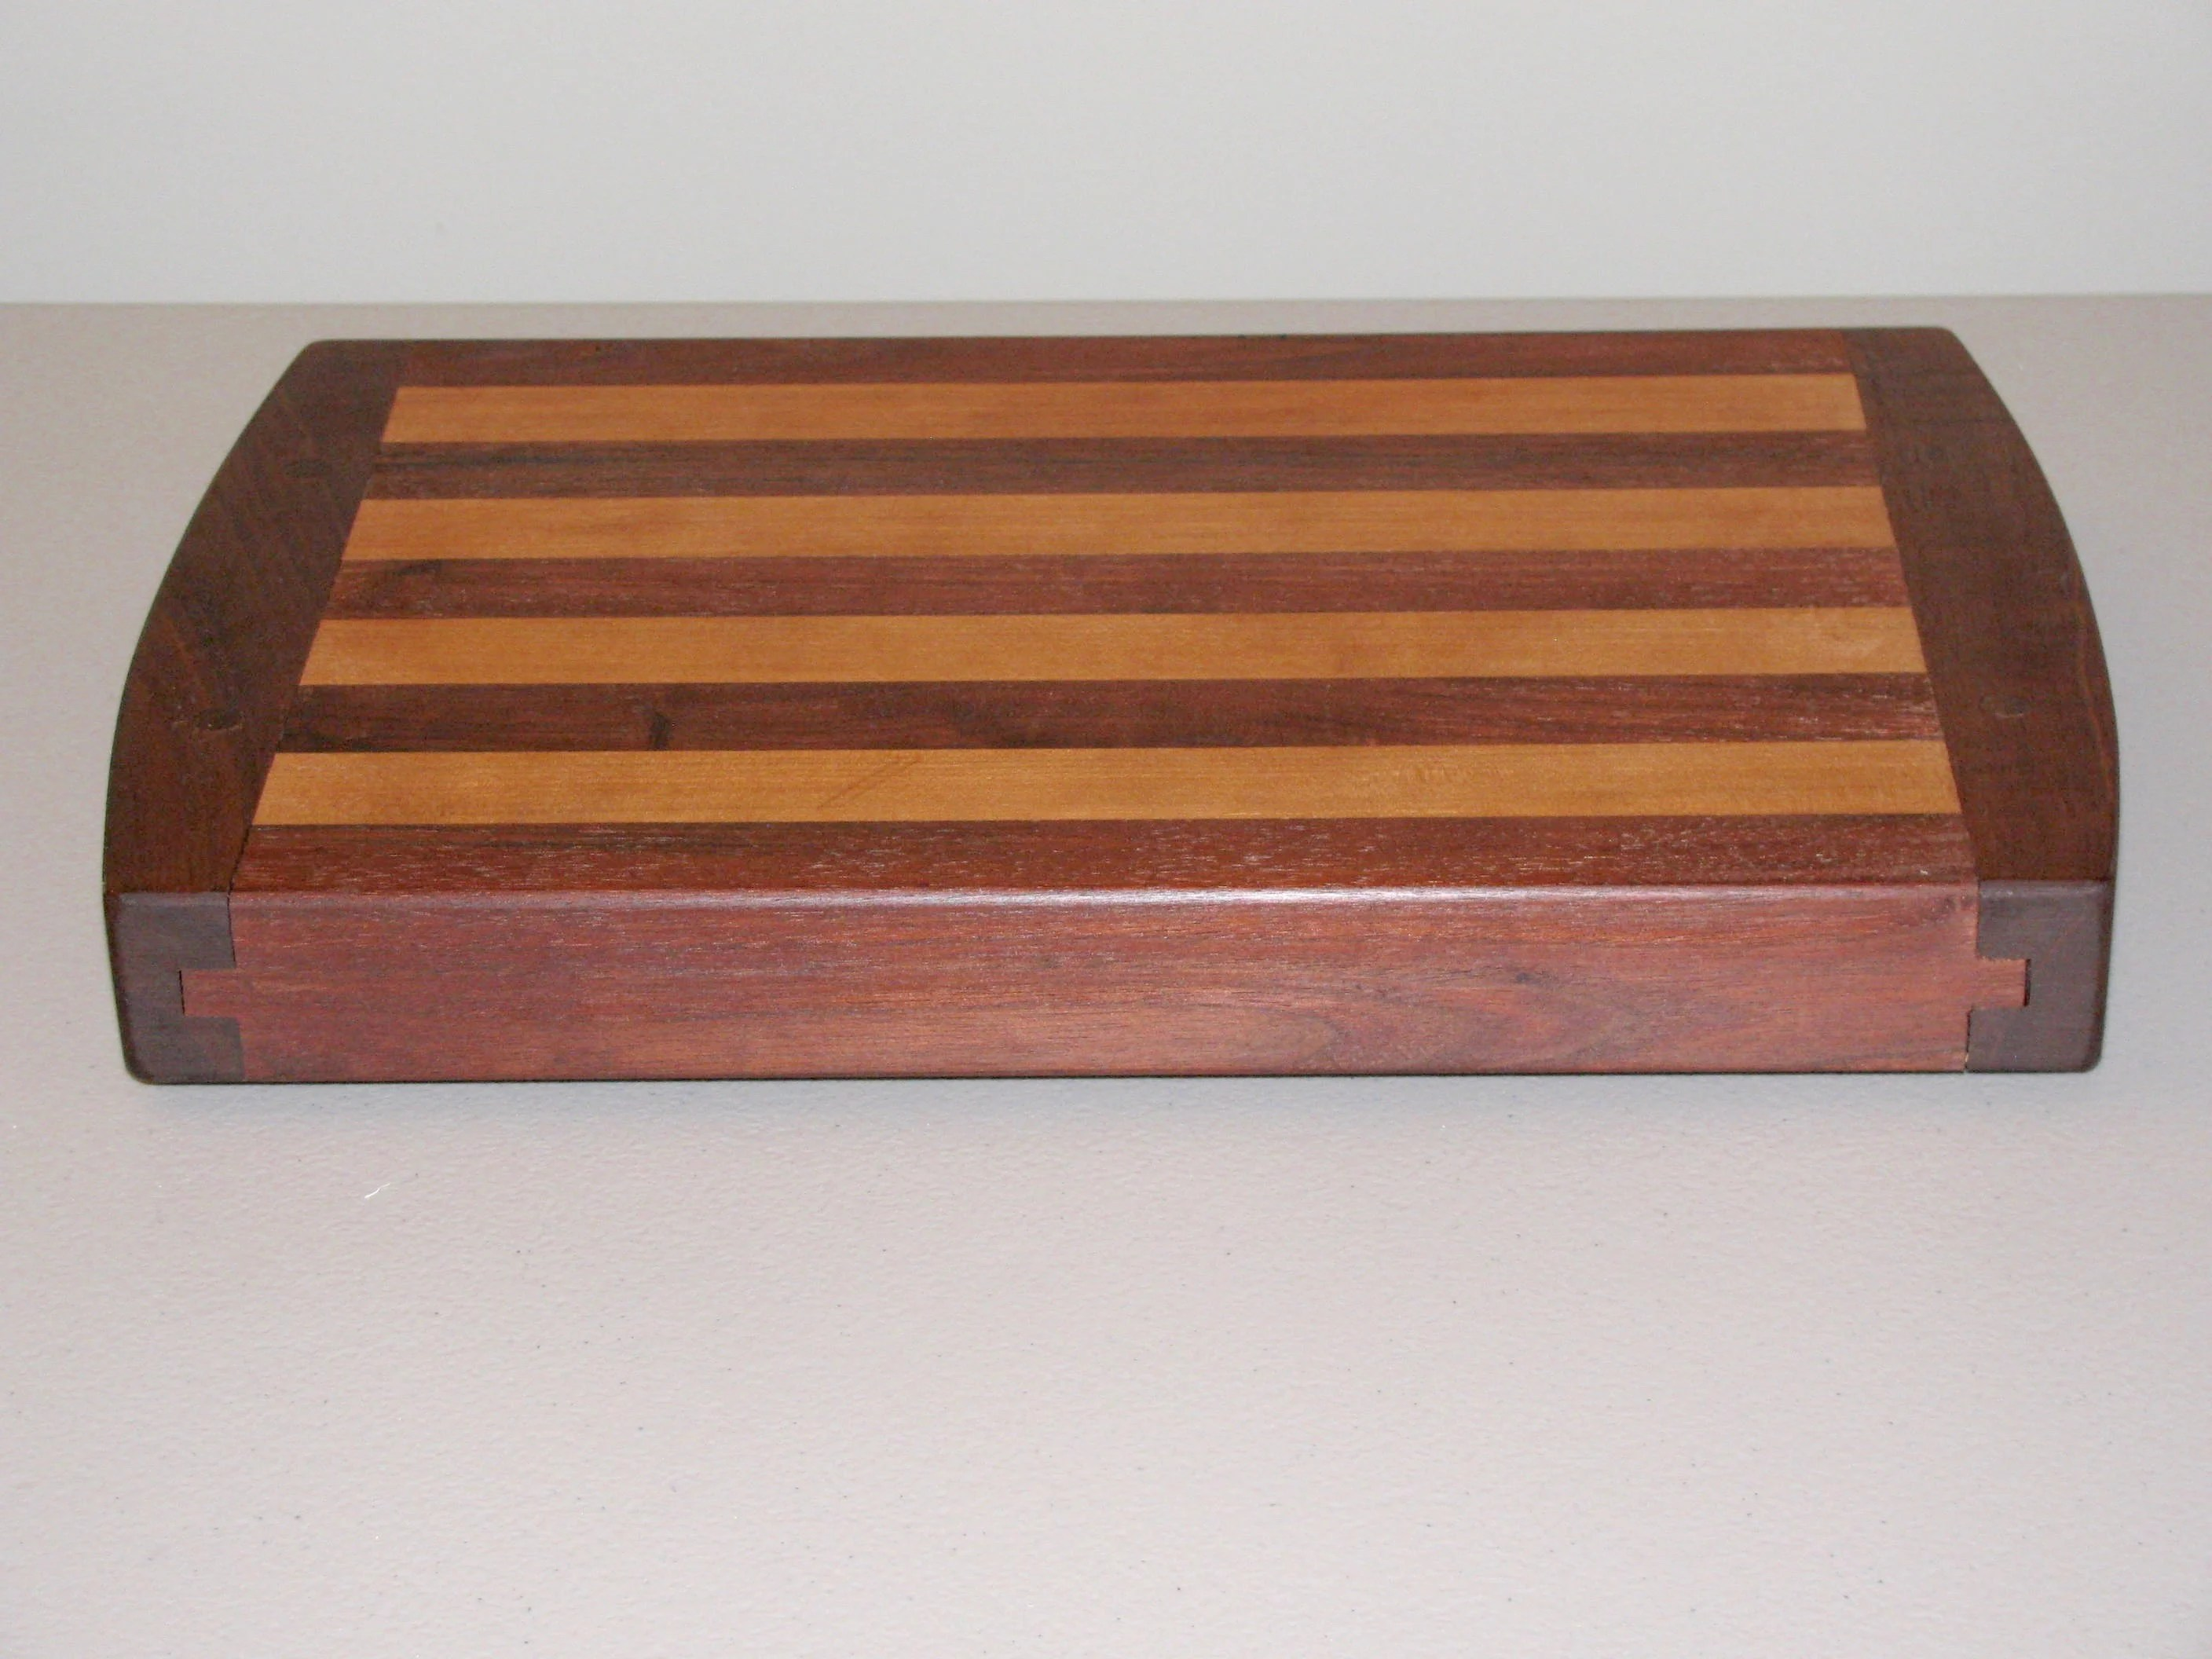 Breadboard-End Cutting Board by Tom Benim